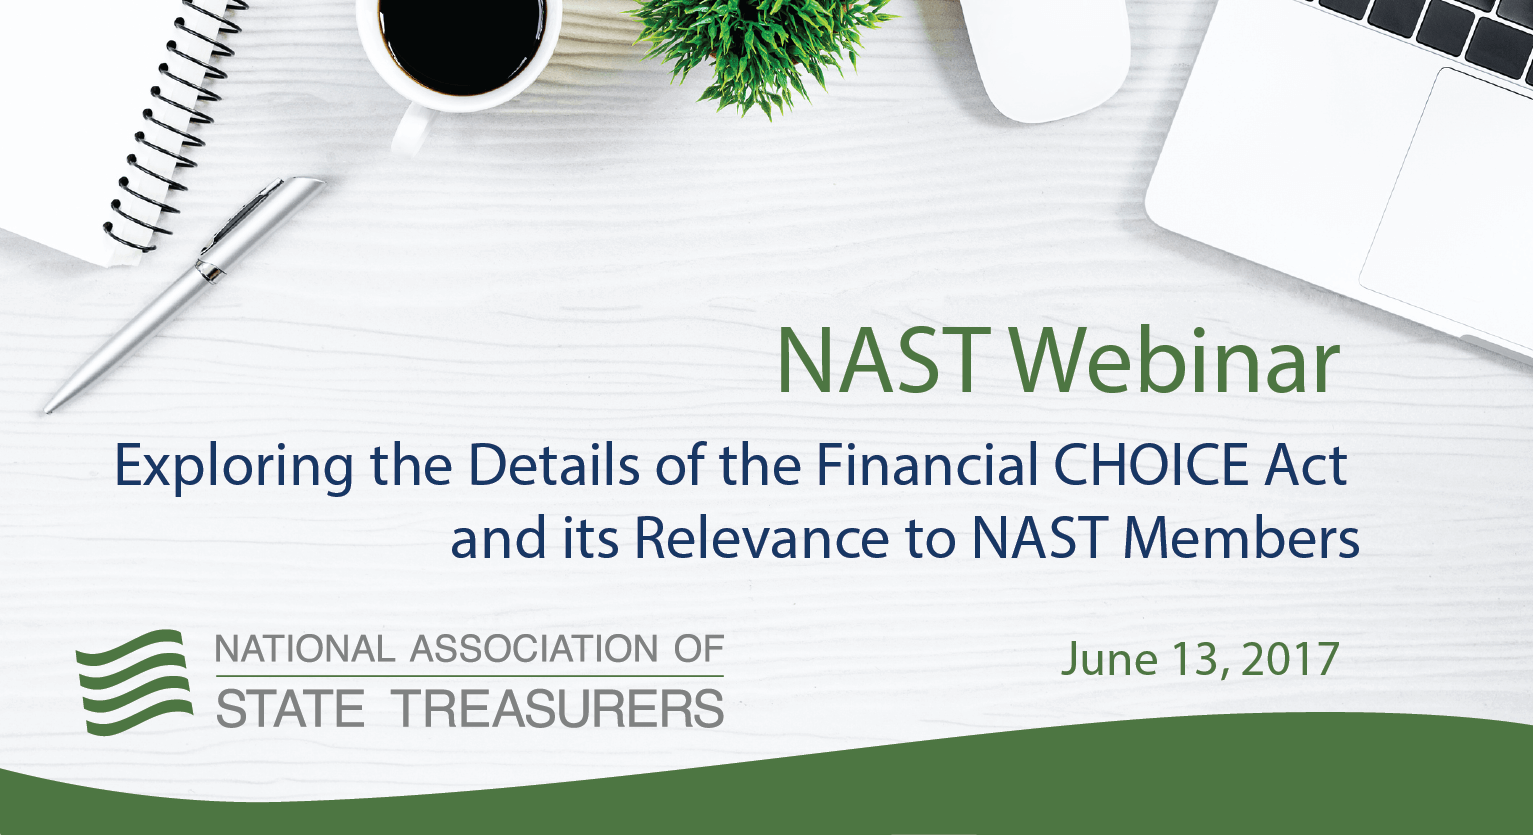 Exploring the Details of the Financial CHOICE Act and its Relevance to NAST Members